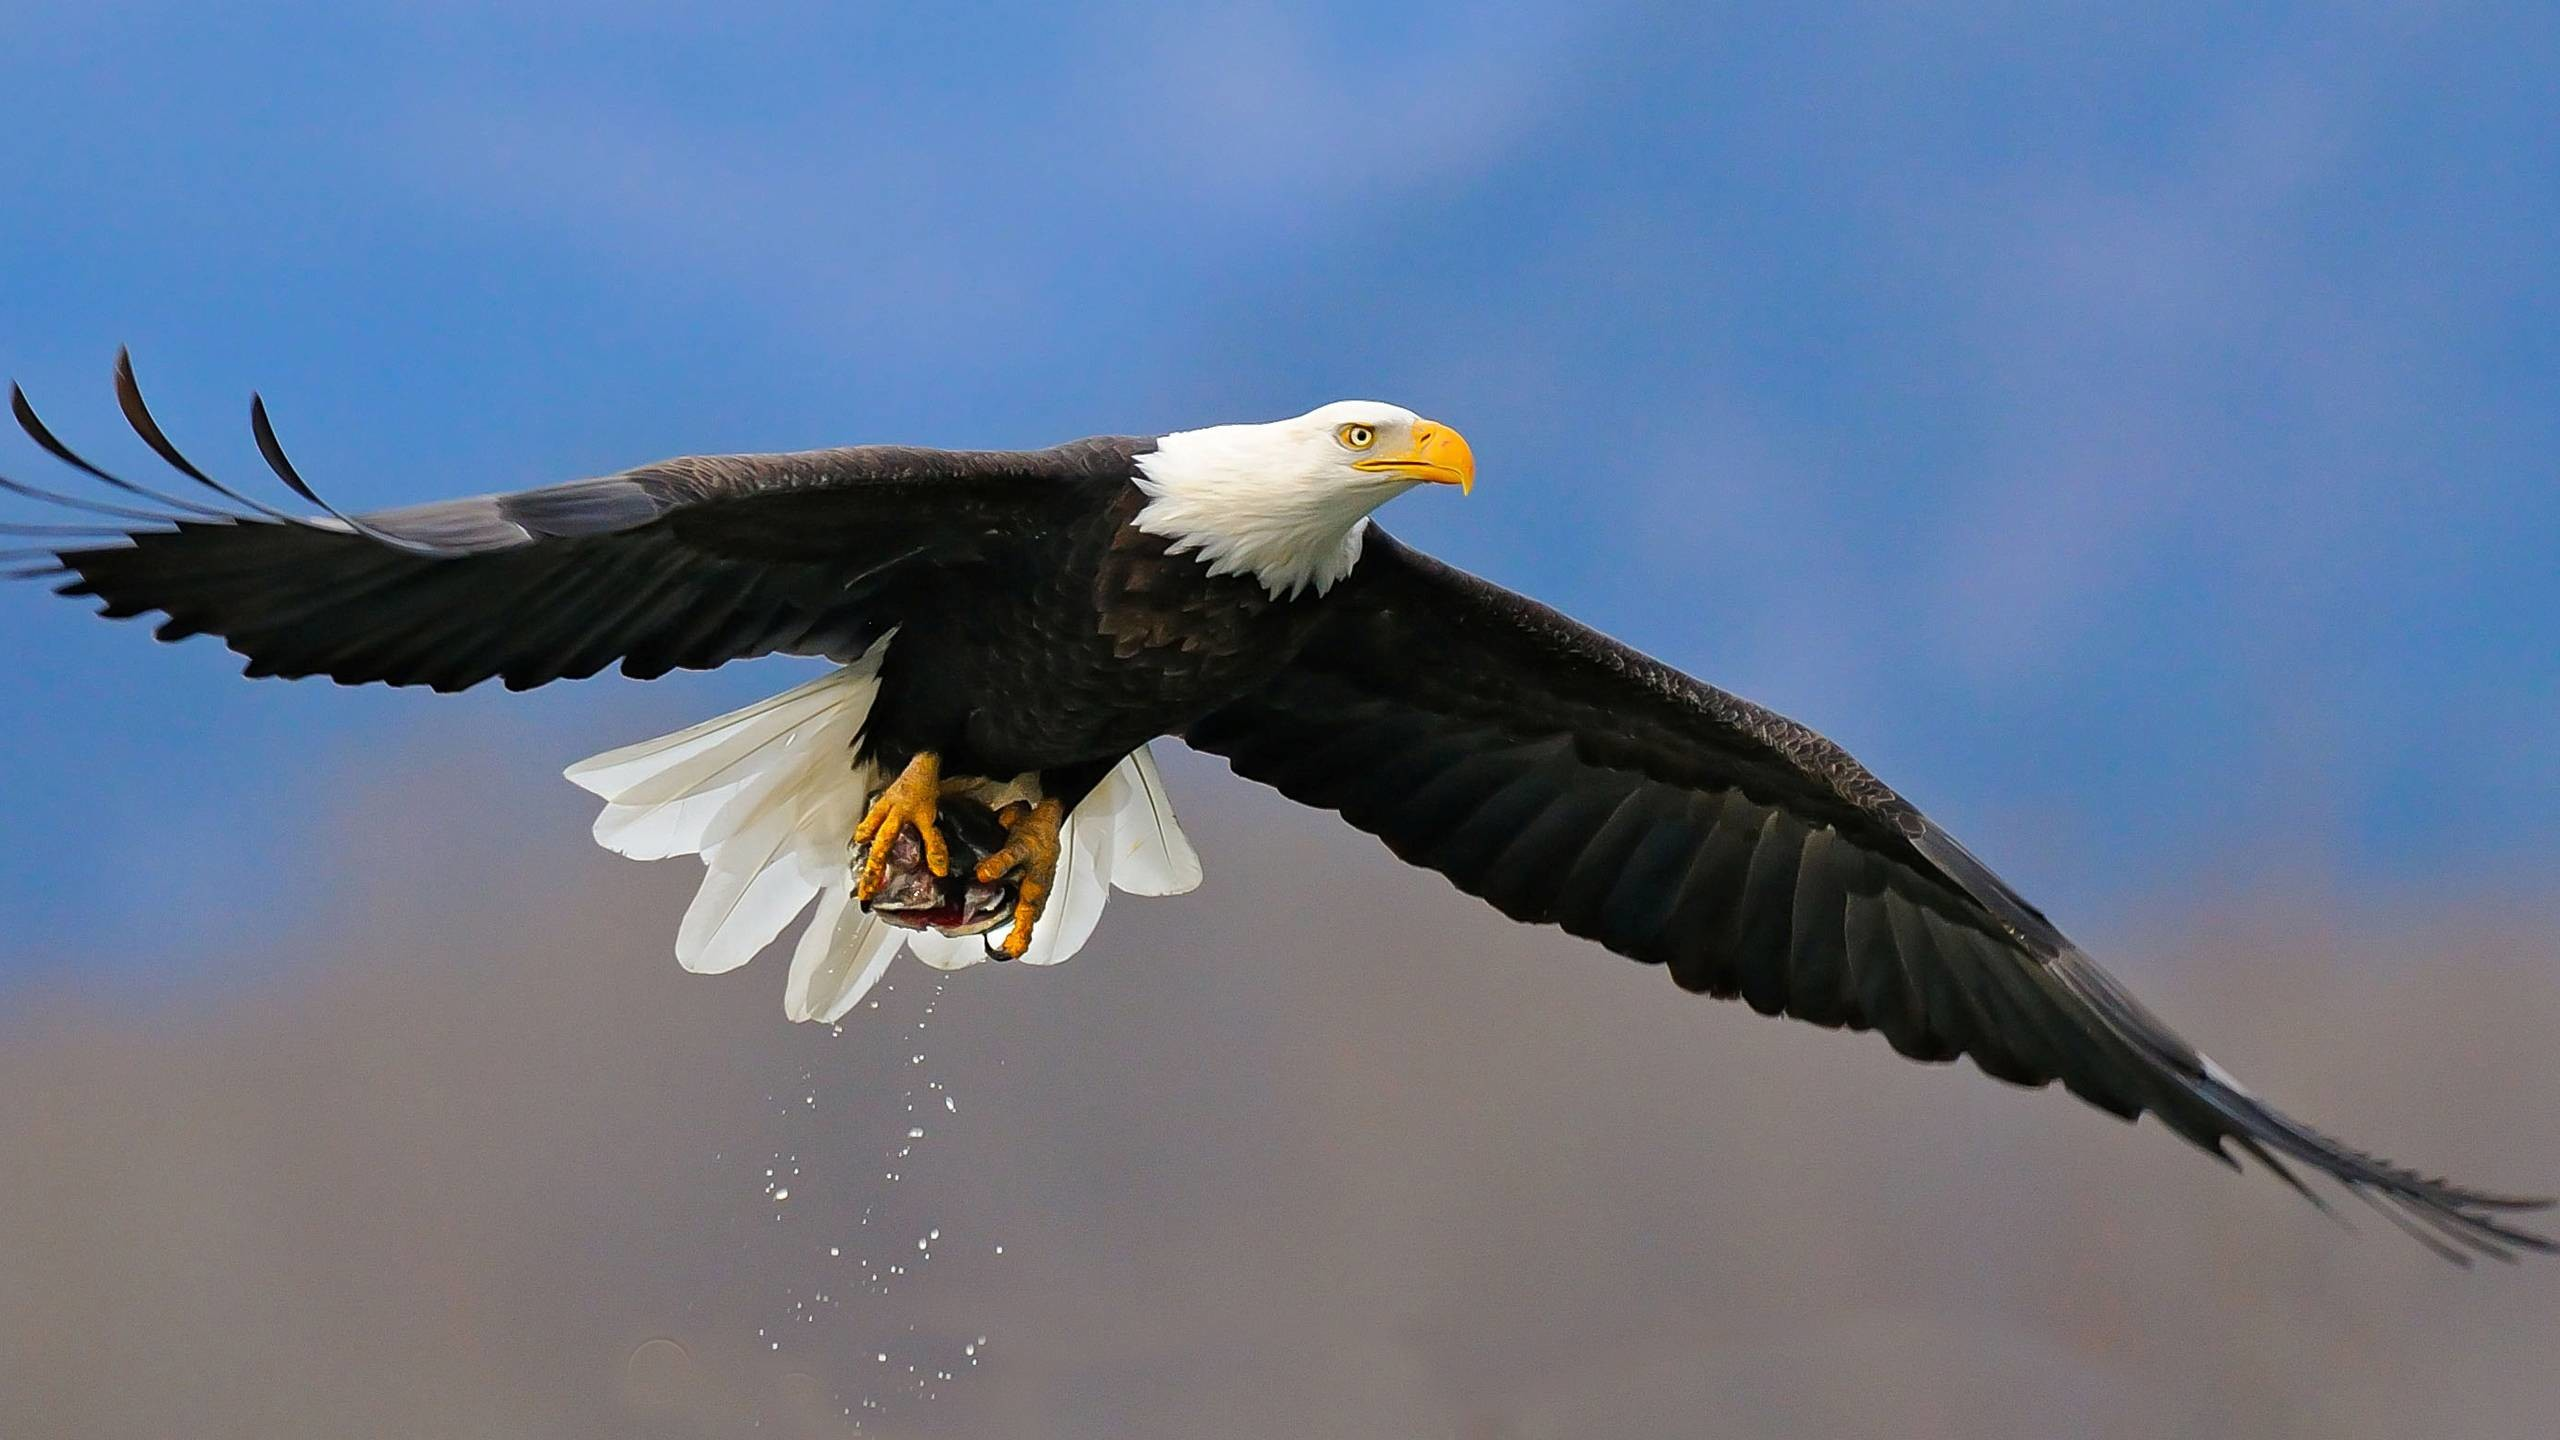 2560x1440 Animal Bald Eagle Wallpaper  px Free Download .